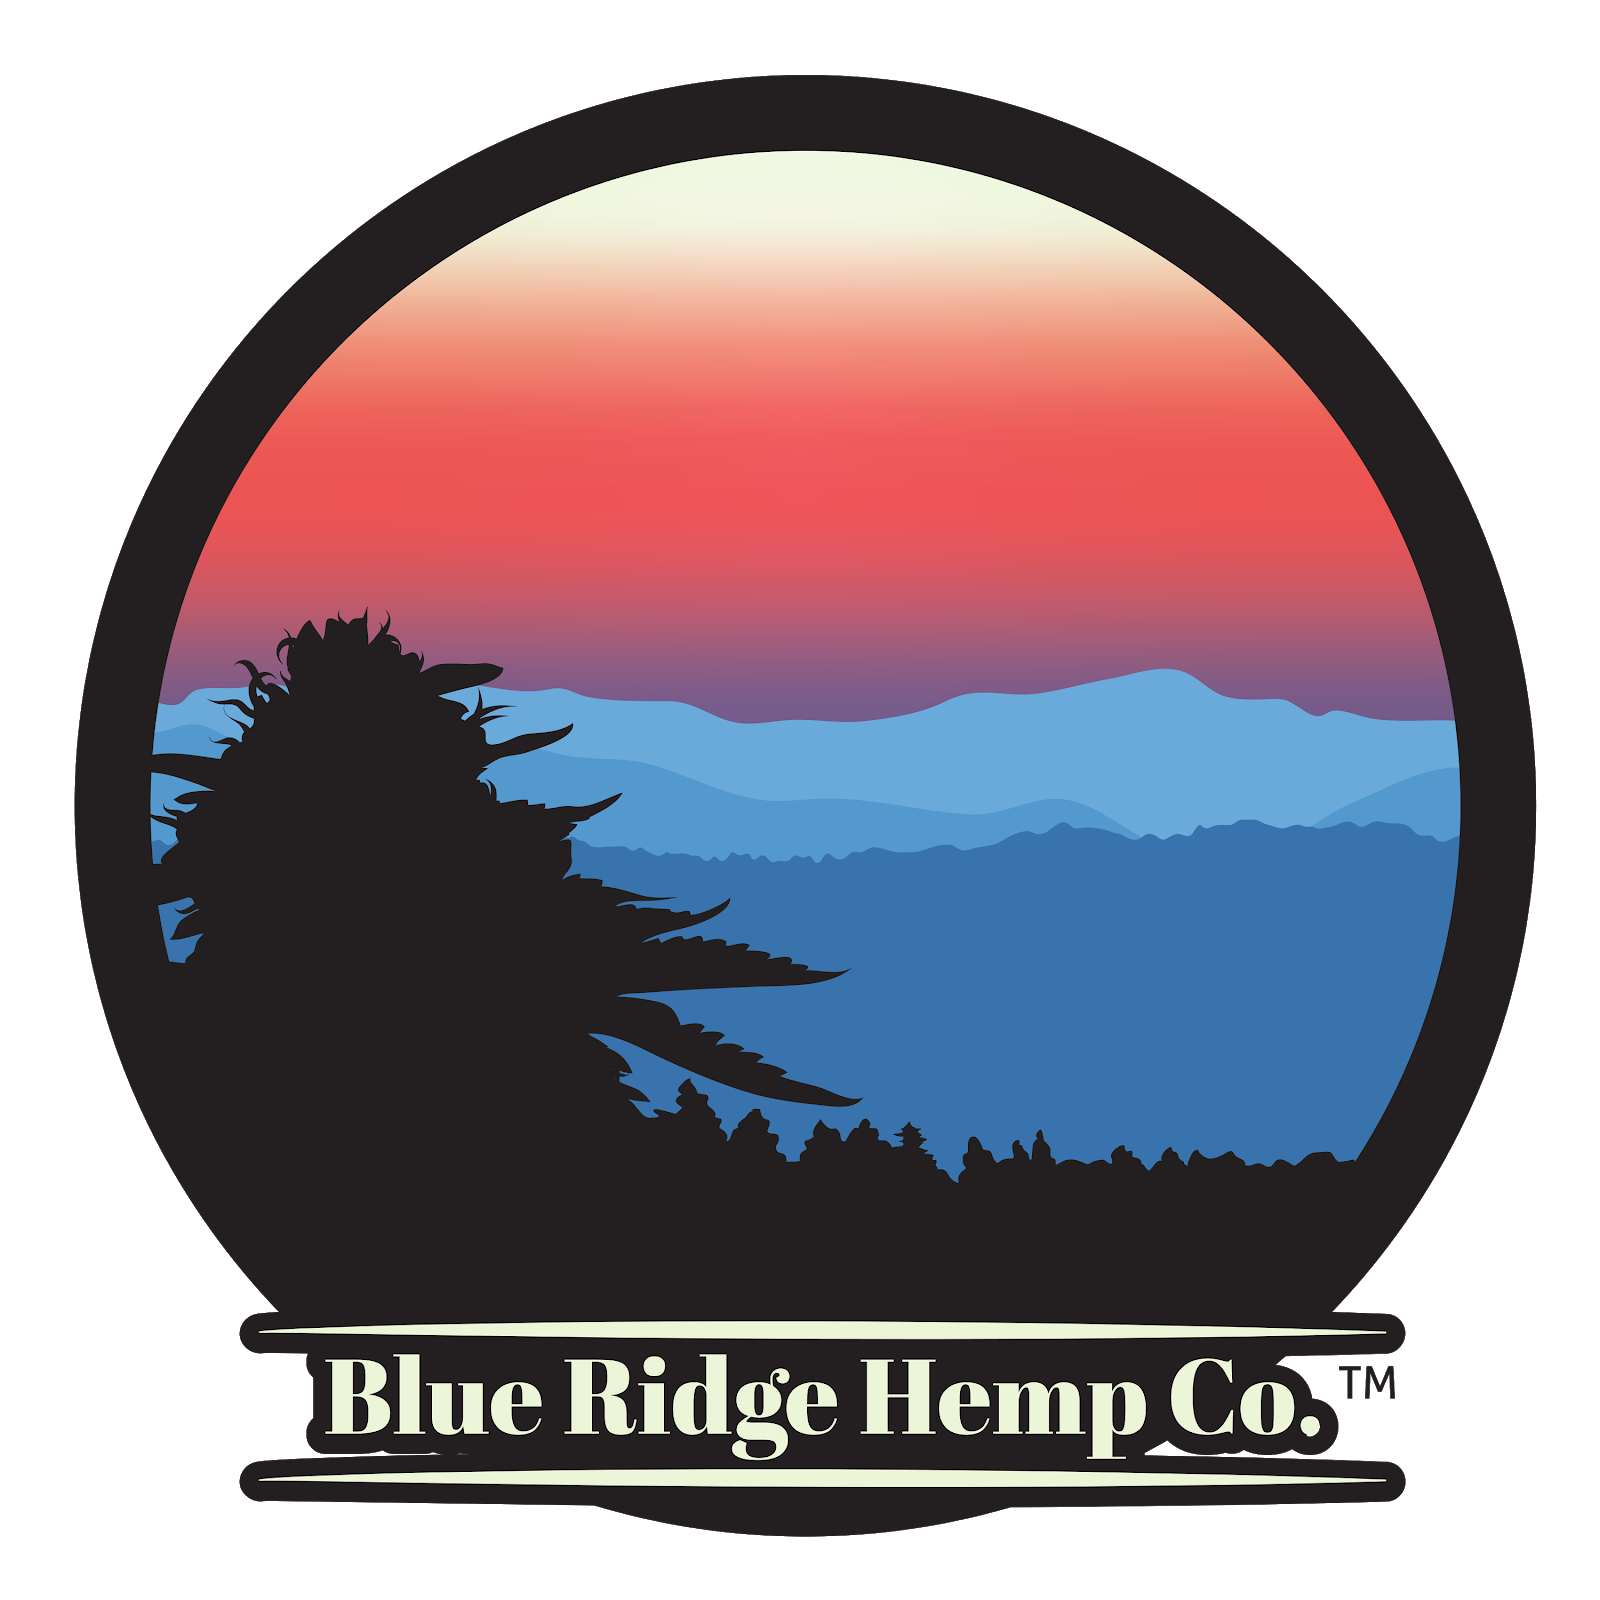 Blue Ridge Hemp Co.